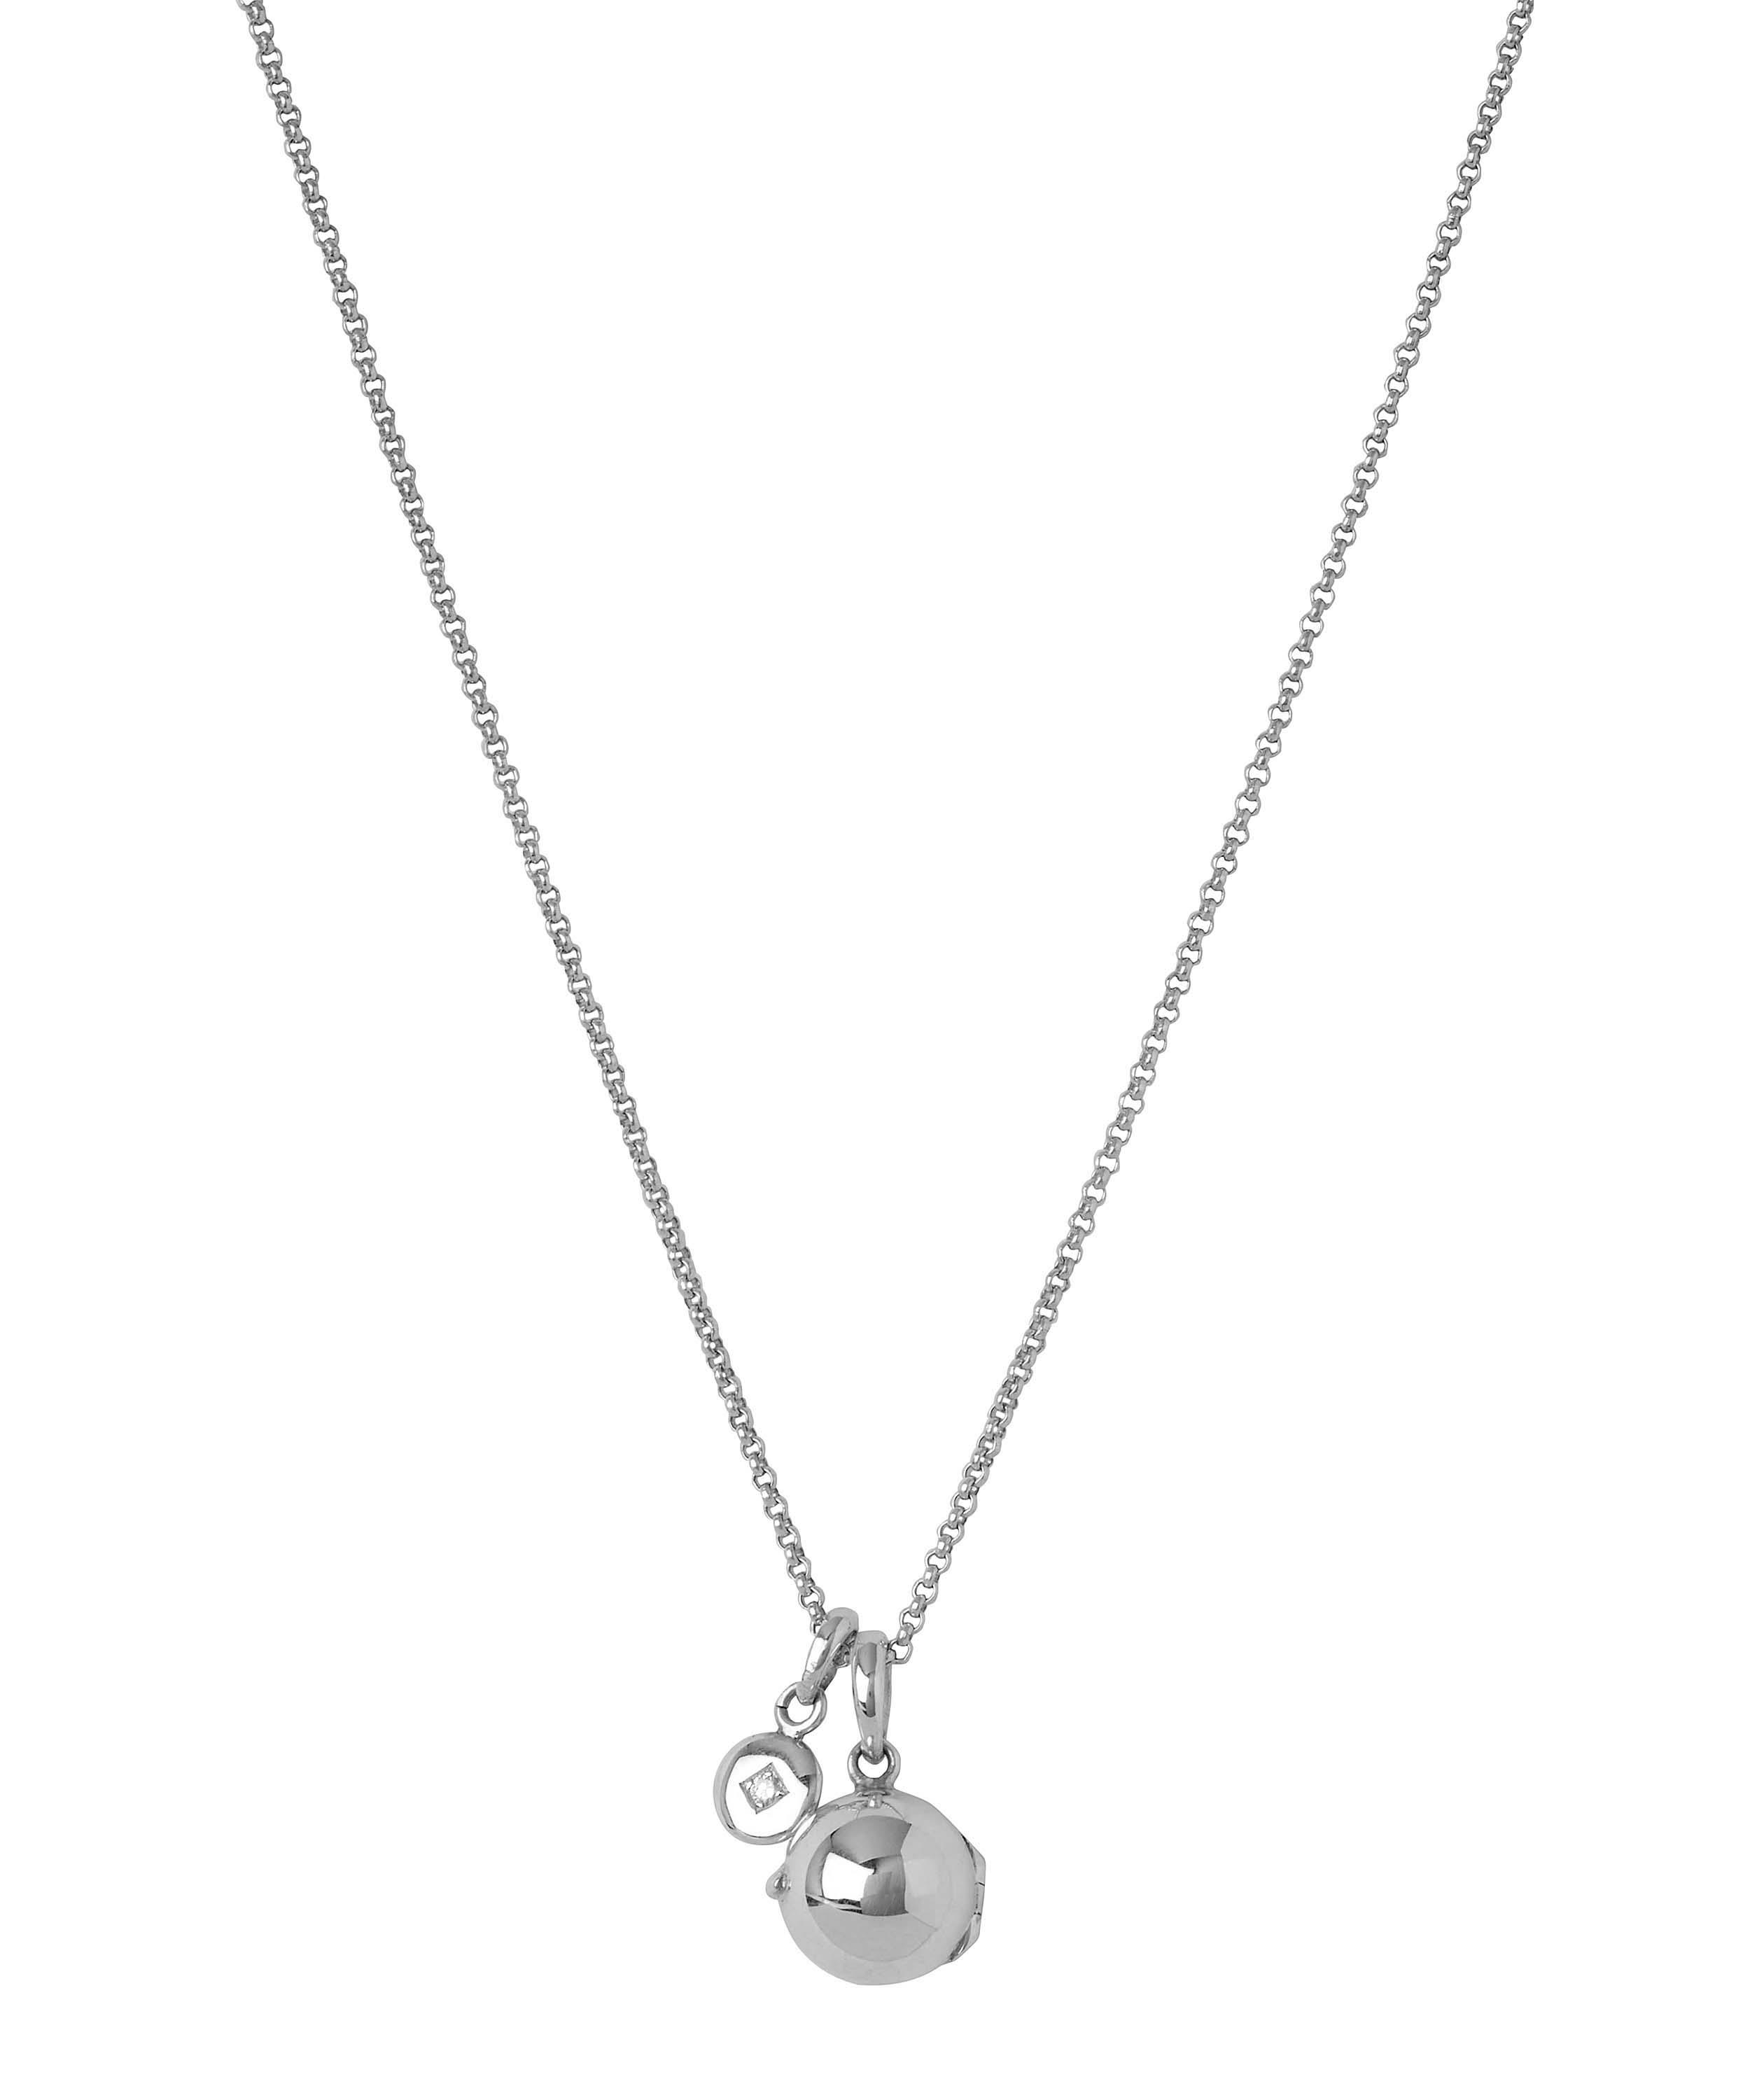 a9a5117d8941 Small Silver My World Locket and Mini Diamond Charm Pendant Necklace ...